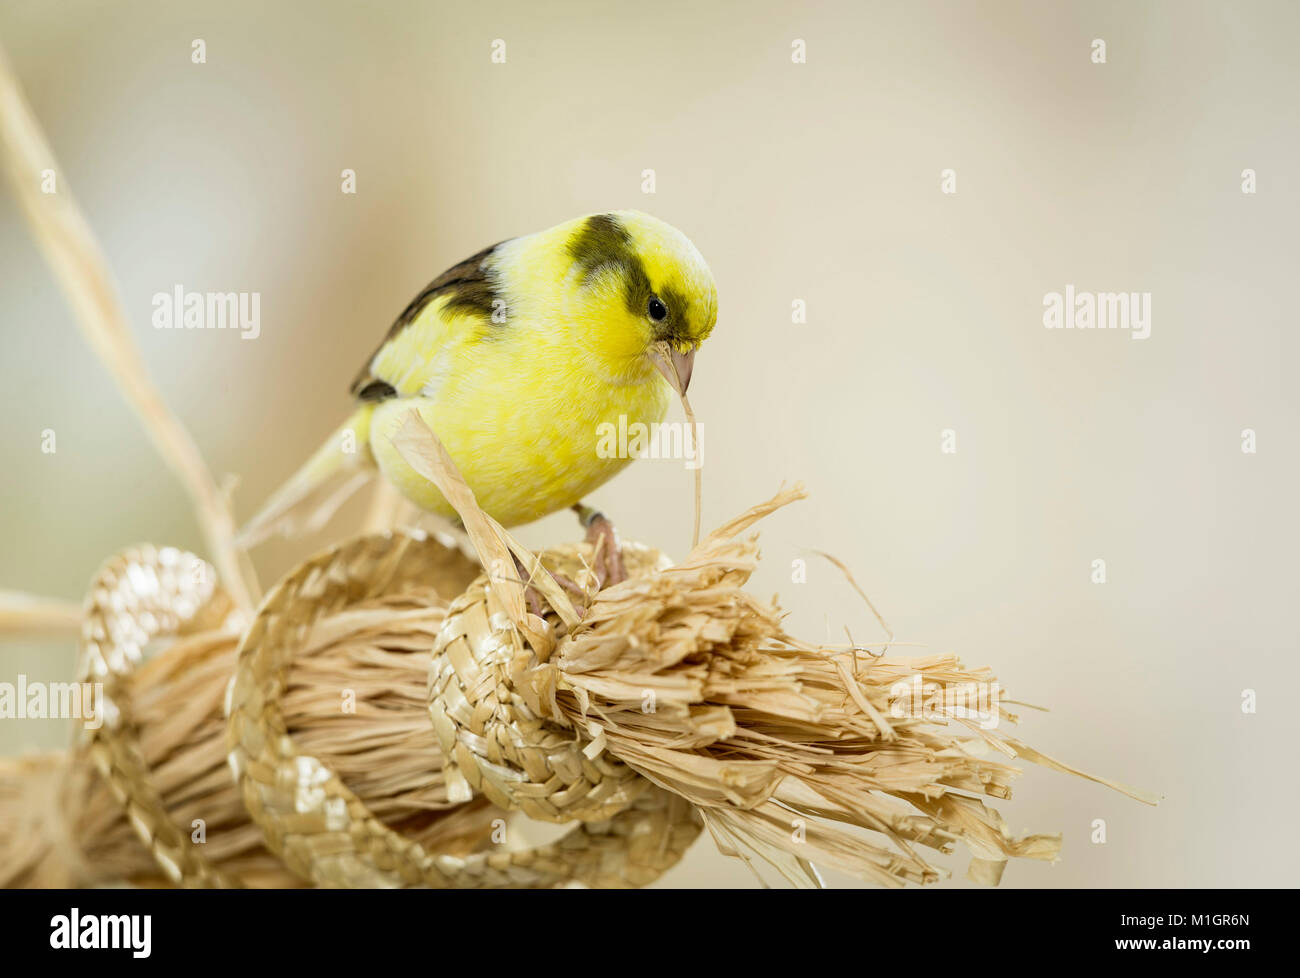 Domestic Canary. Adult pulling on bast fibres. Germany. - Stock Image